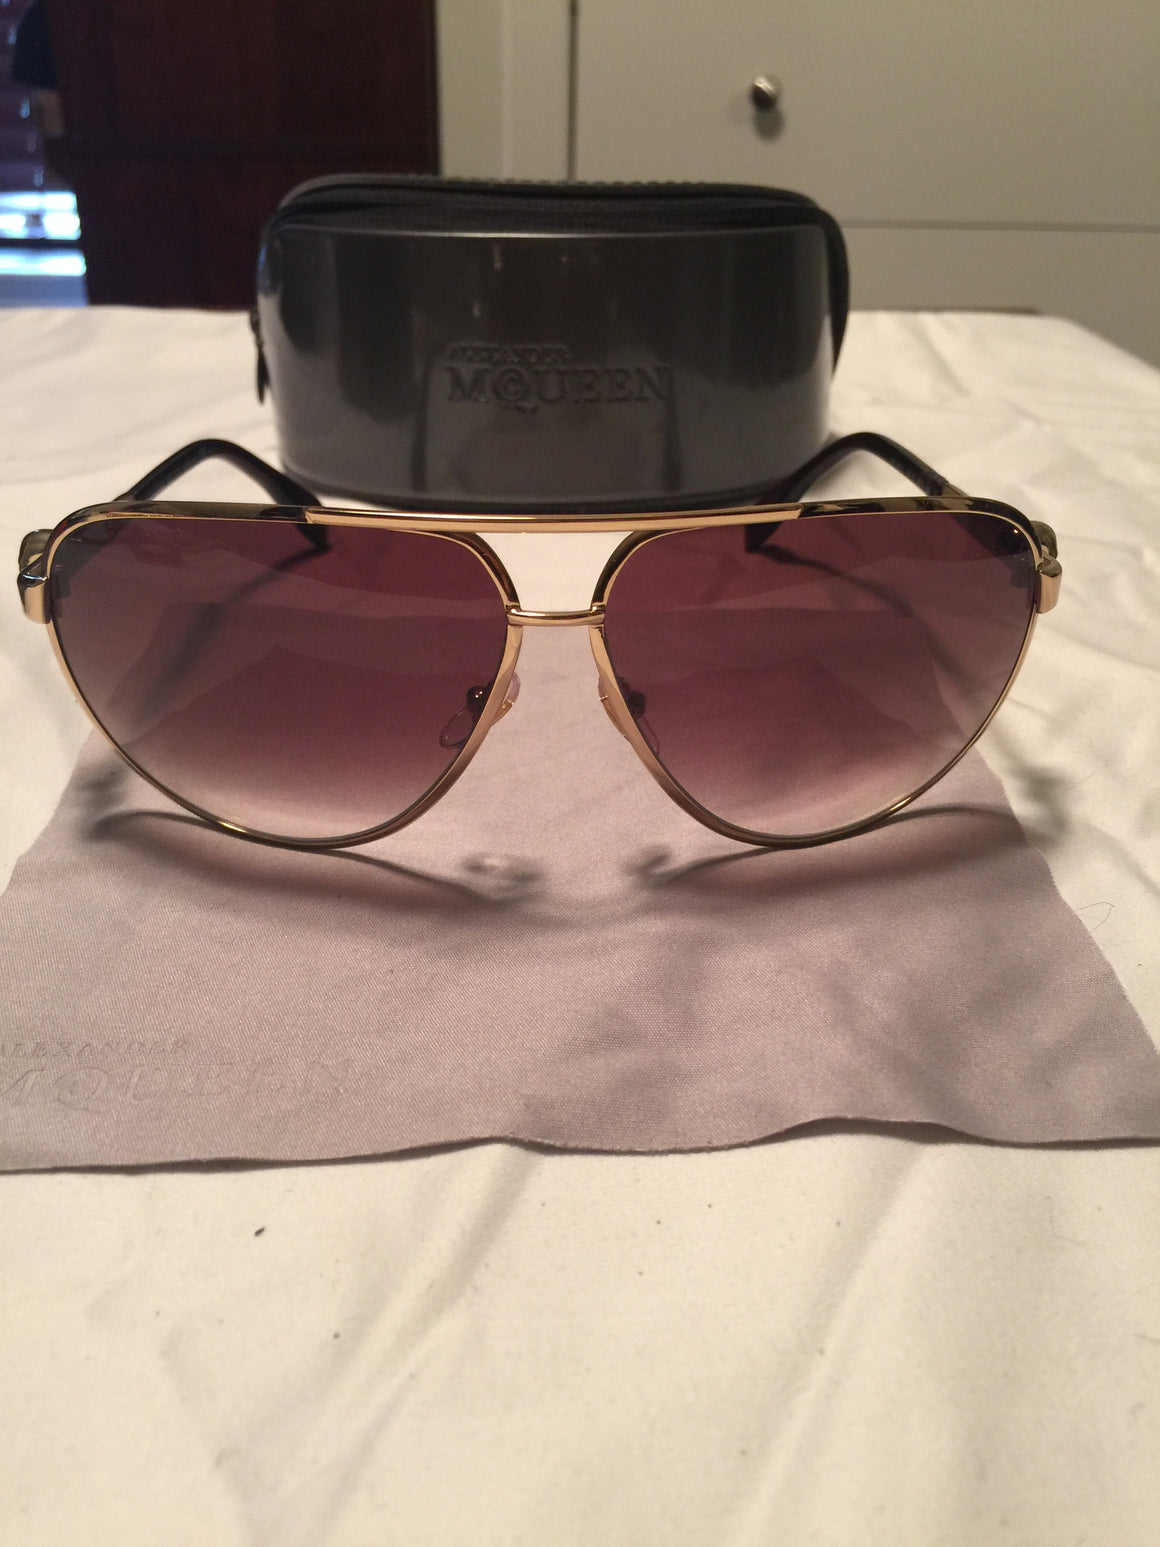 Alexander McQueen Aviator Sunglasses - New York Authentic Designer - Alexander McQueen